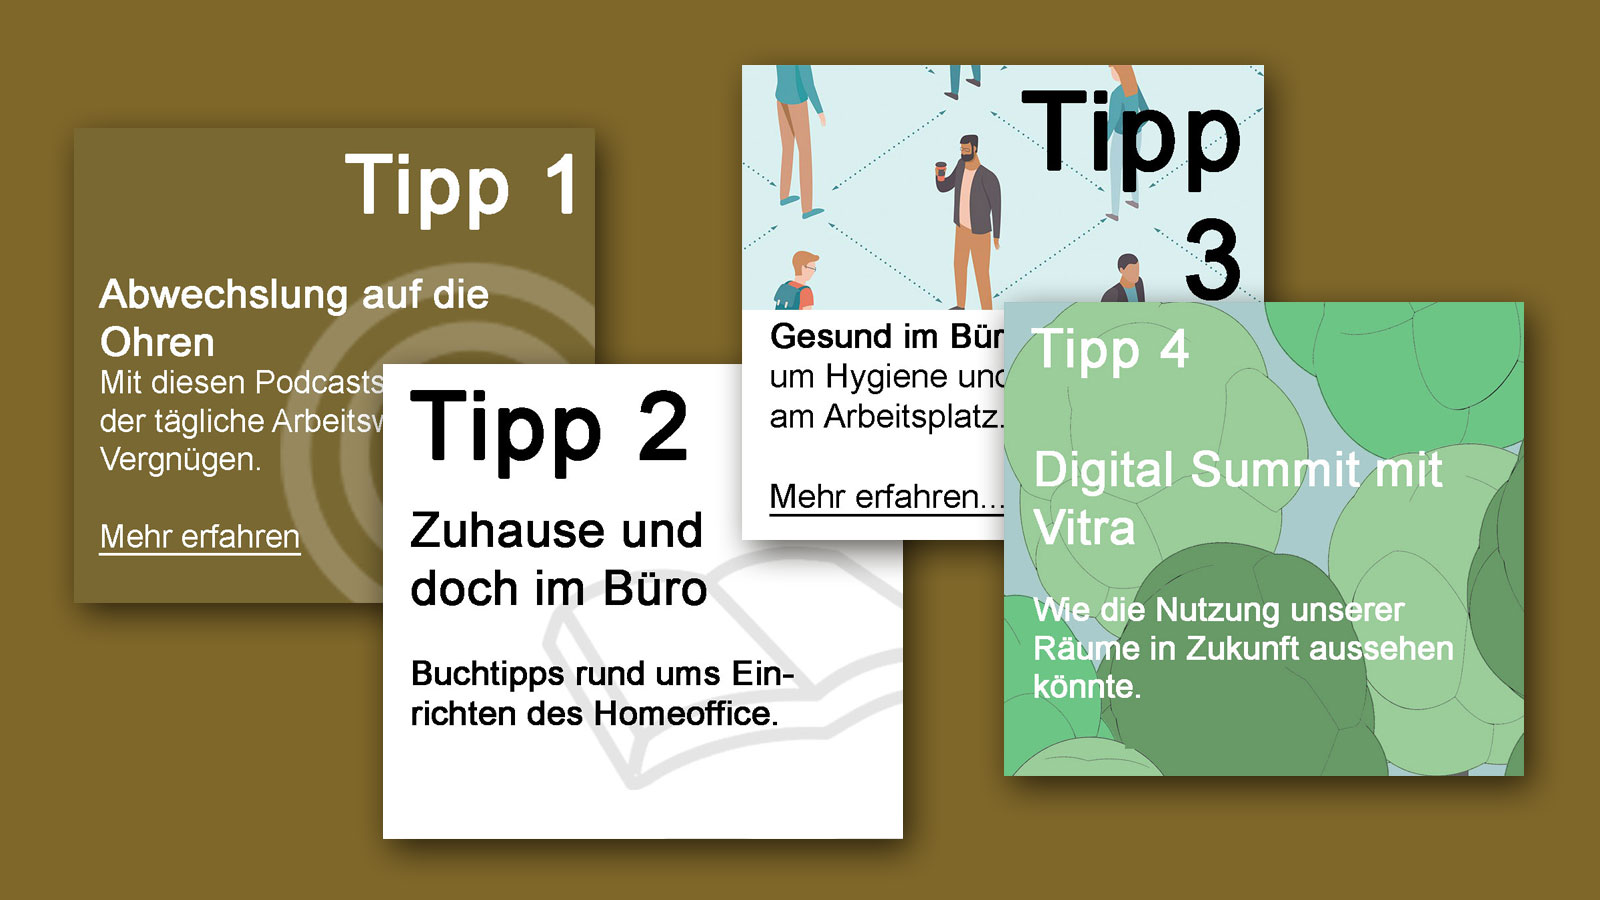 IN KÜRZE – Tipps zum Thema Back to office